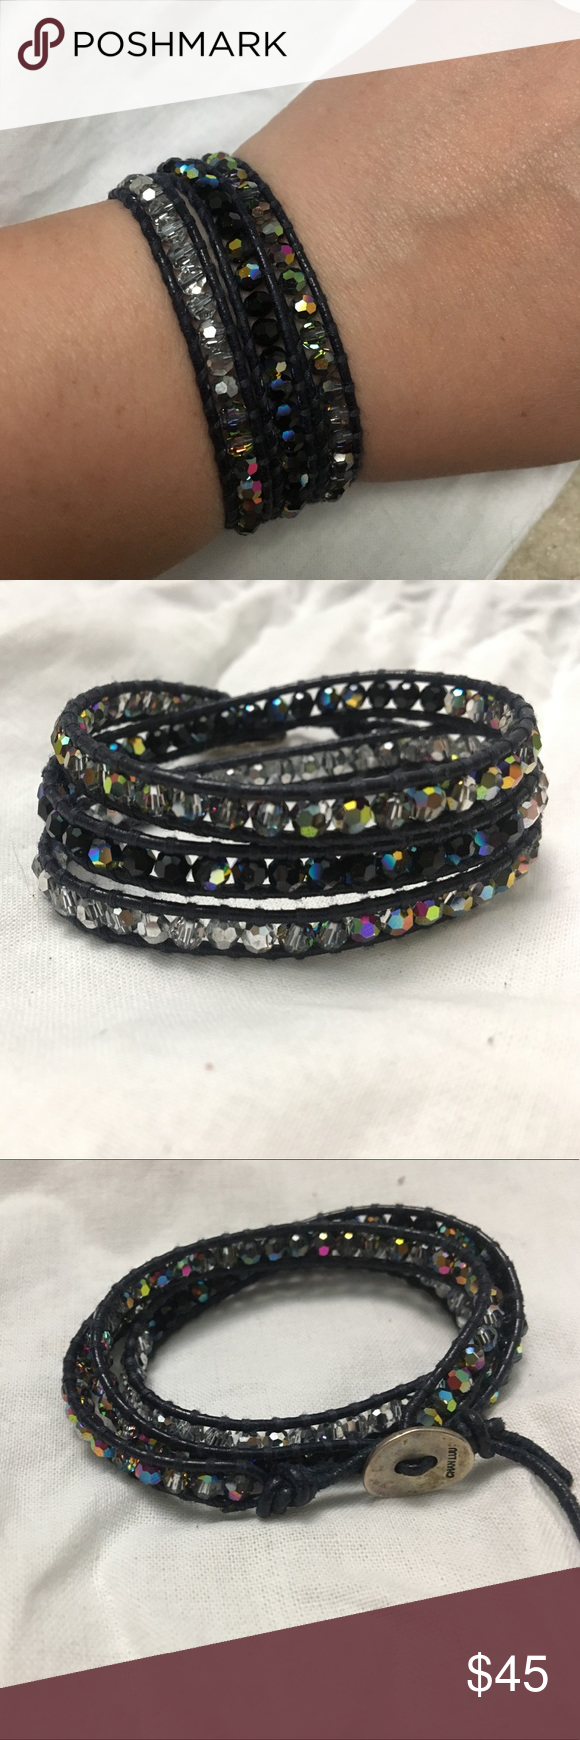 Authentic 3 Wrap Chan Luu Swar. Crystal Bracelet Authentic pre loved for many photoshoots handmade 3 Wrap Chan Luu Swarovski Crystal Bracelet. SS Original Chan Luu Button.       Crystal sections: Crystal AB, Crystal CAL, Jet AB & Crystal AB on black cow leather. Chan Luu Jewelry Bracelets